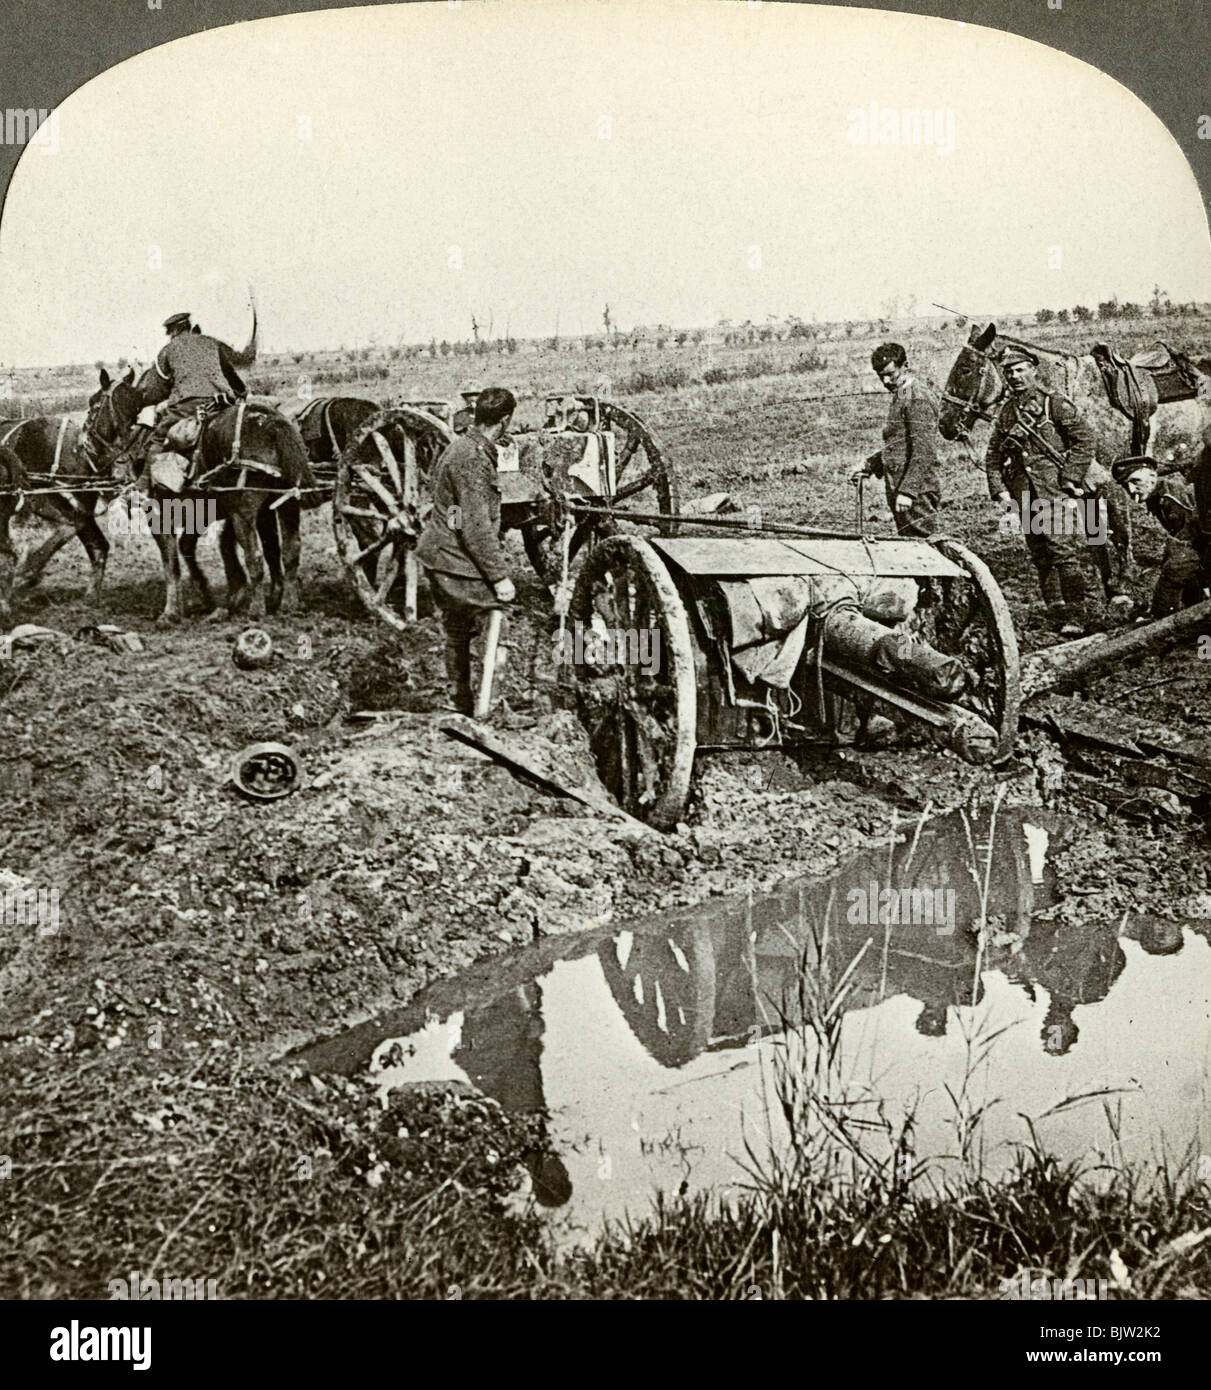 Removing a field gun from a flooded position, World War I, 1914-1918. - Stock Image